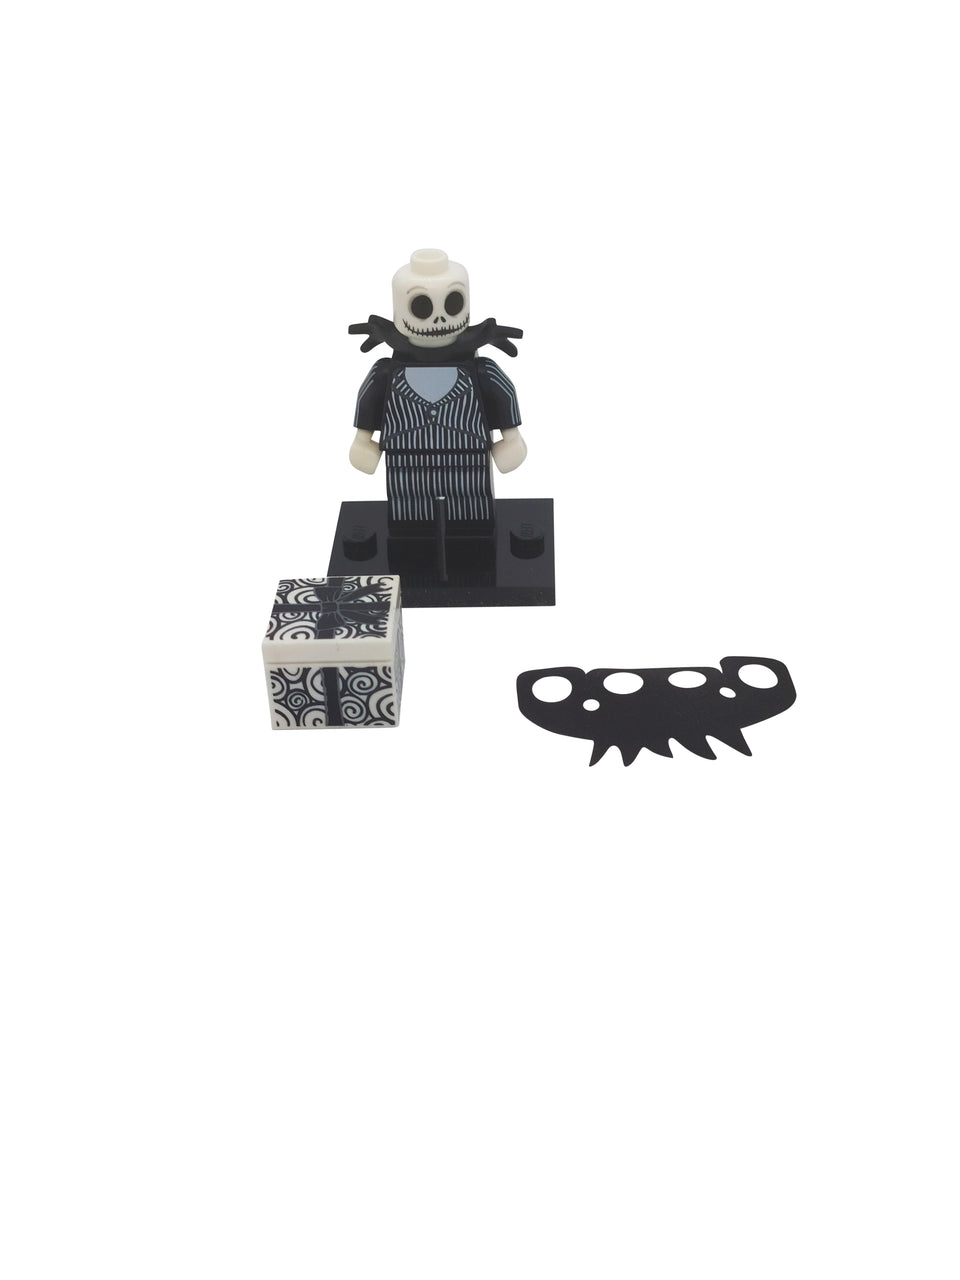 LEGO Disney Minifigures Series 2 Jack Skellington